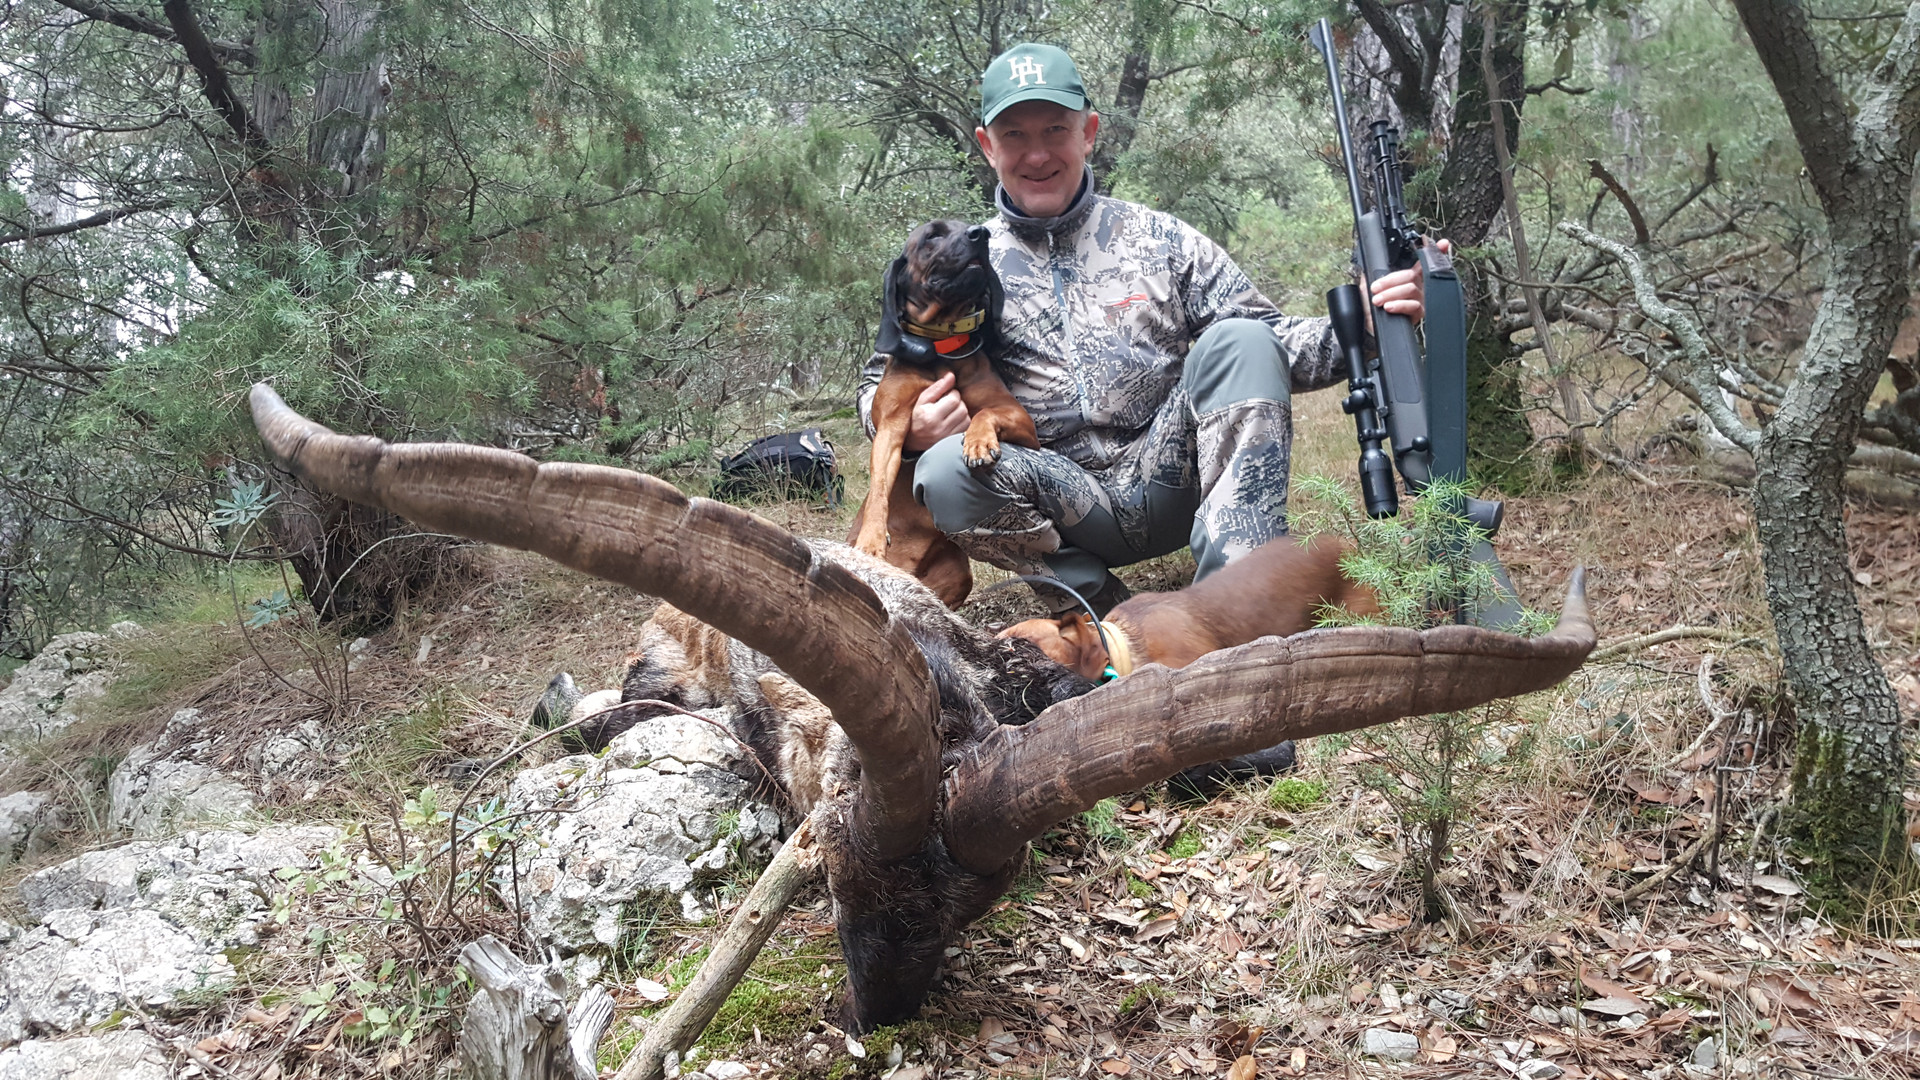 ibex-spain-beceite-hunt-lynx-travel